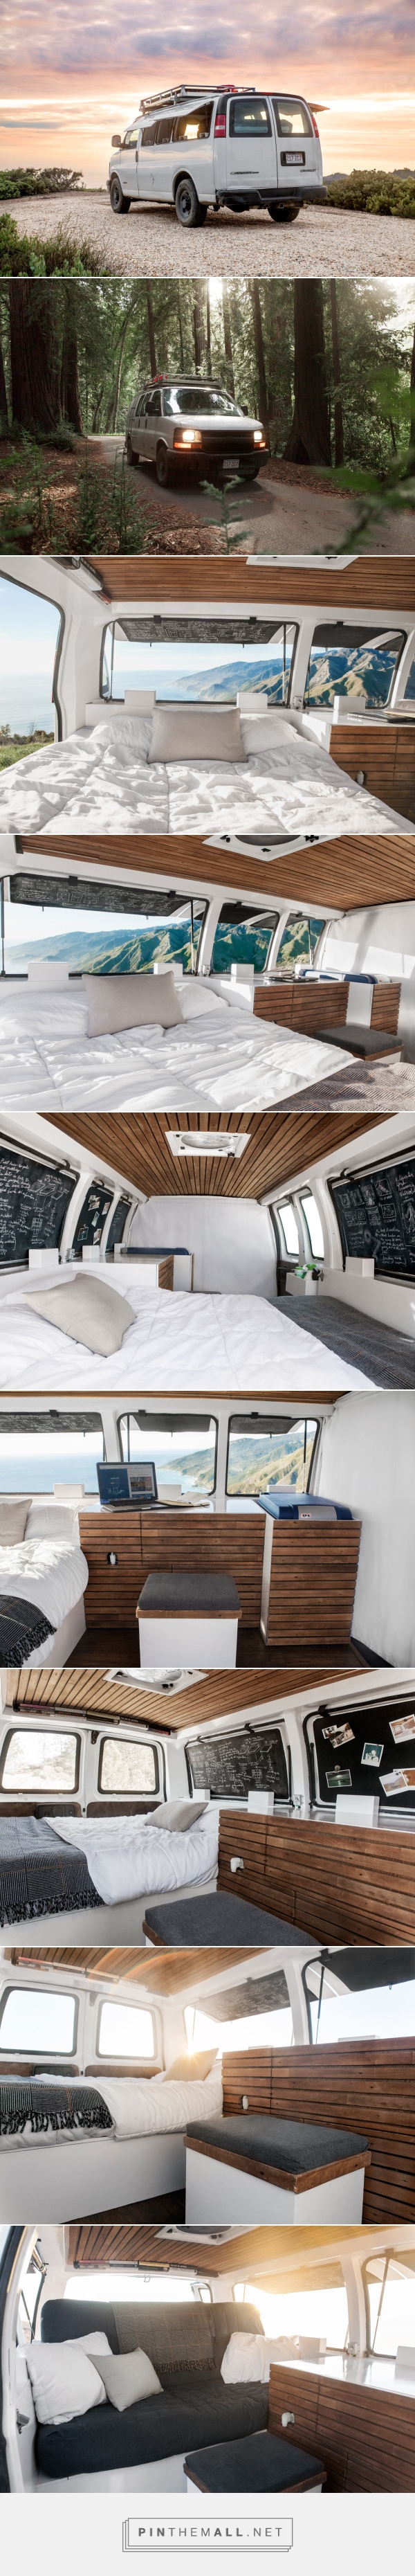 A Used Cargo Van Becomes a Mobile Studio - Design Milk - created via https://pinthemall.net